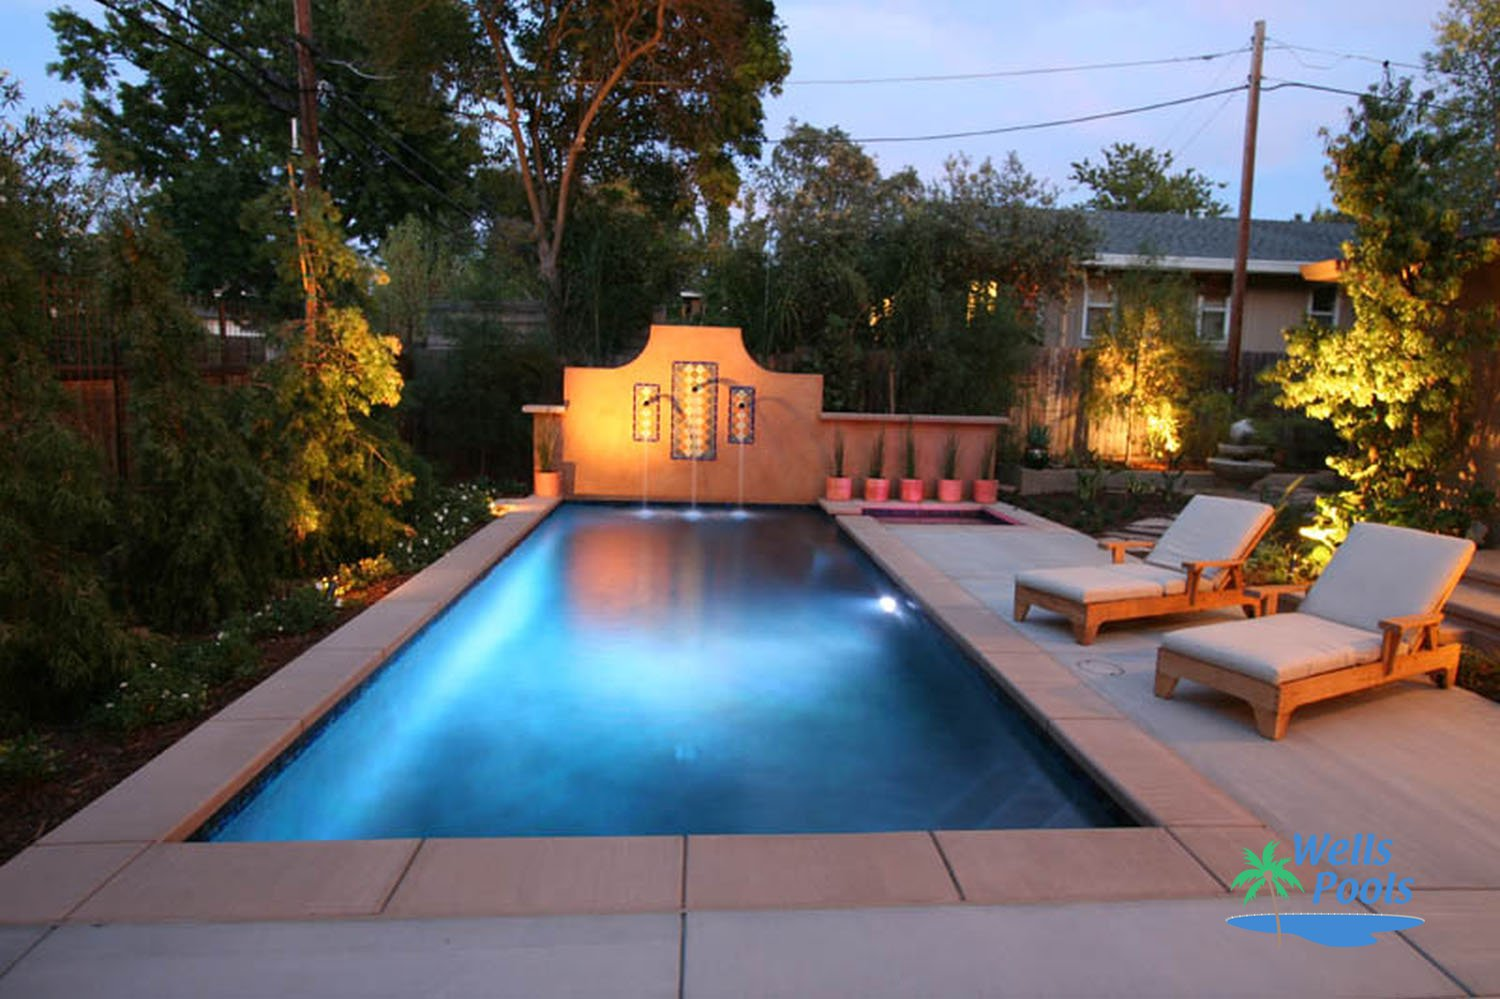 Small Pool Ideas To Turn Your Small Backyard Into Relaxing - Backyard ideas with pool